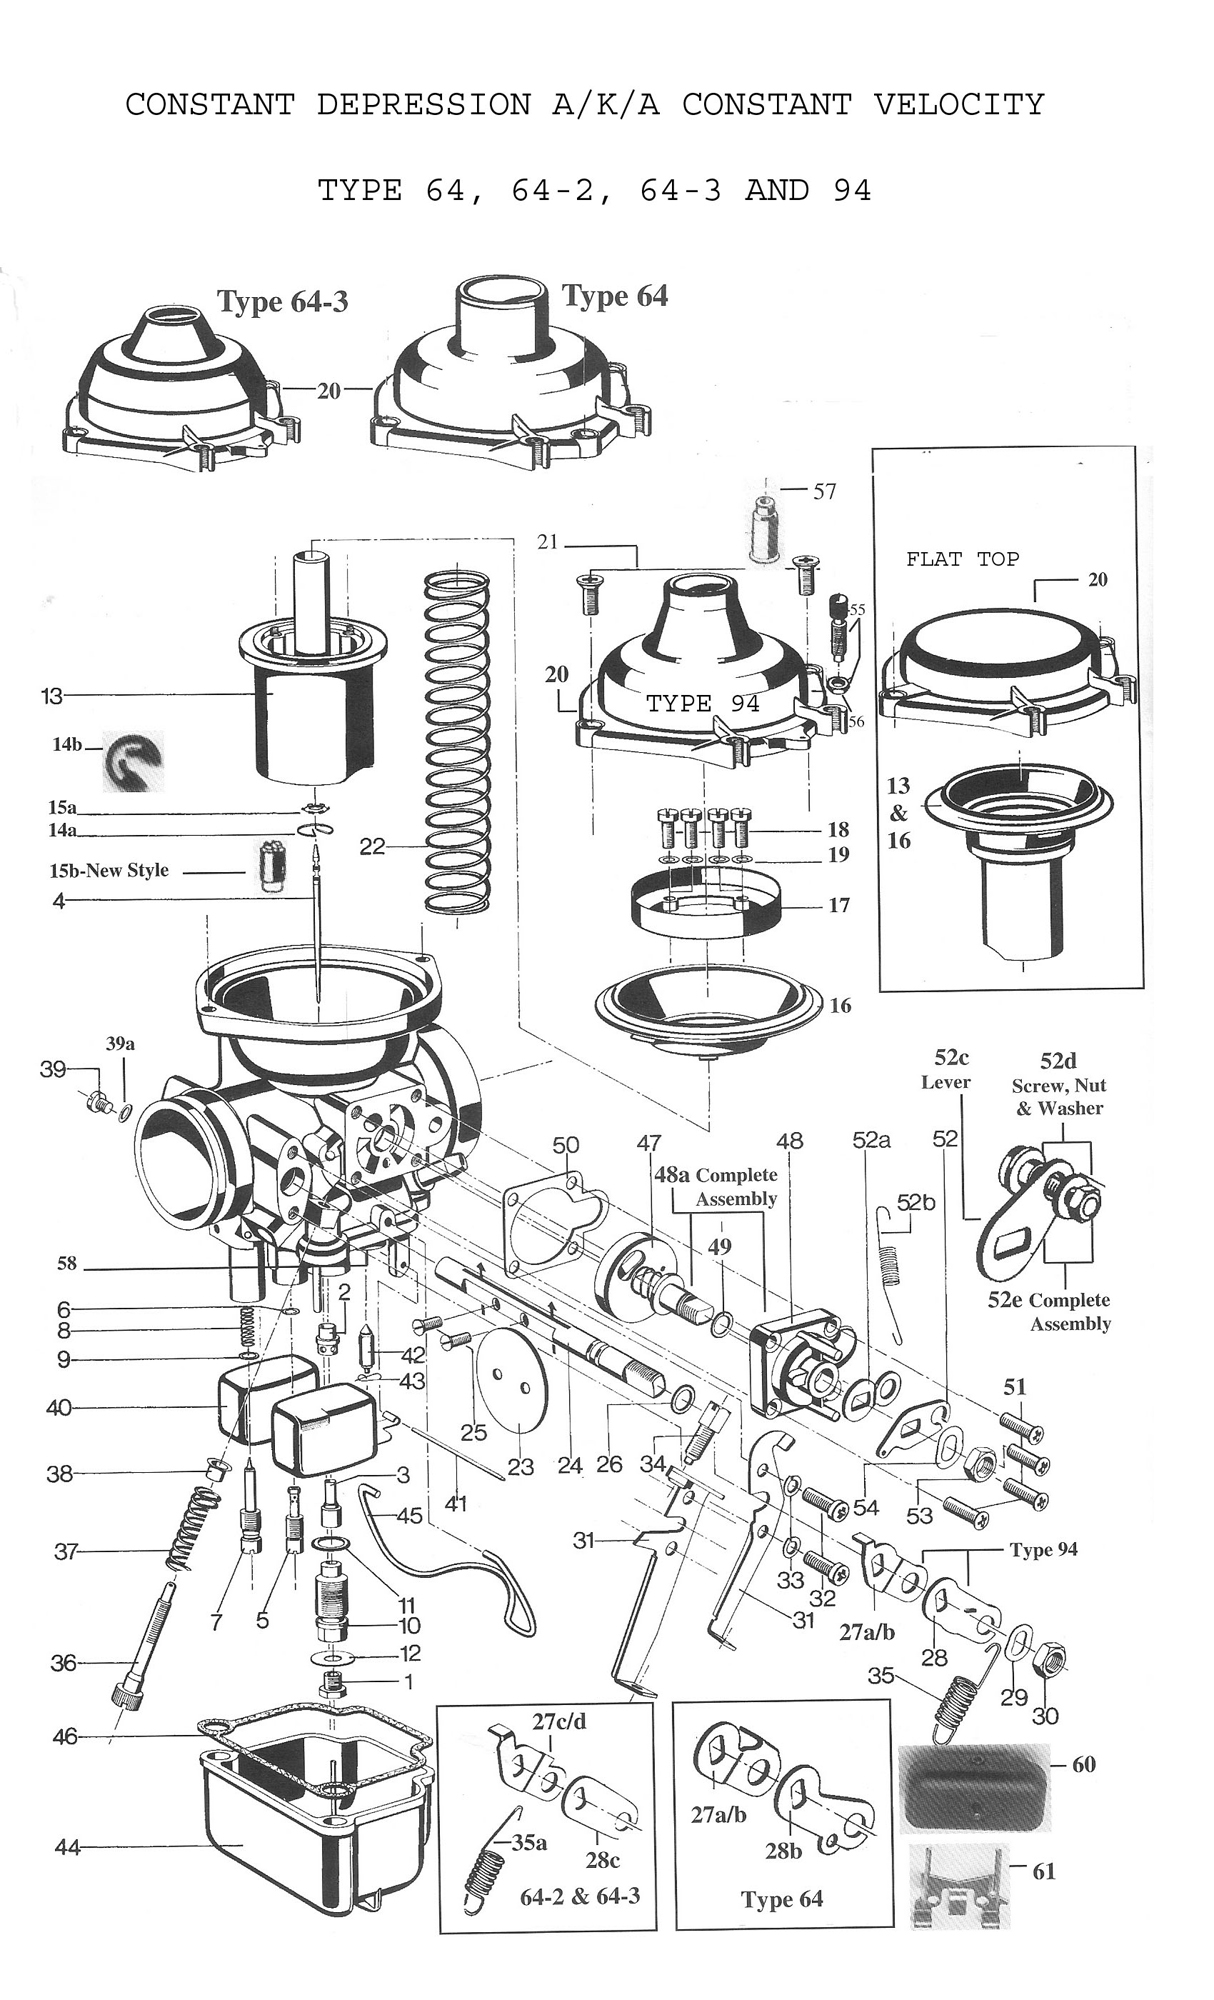 suzuki gsxr 750 wiring diagram with Gsxr 600 Wiring Harness Routing on Wiring Diagram 2000 Suzuki Rm further 2007 Suzuki King Quad 700 Wiring Diagram also GSXR Wiring Diagram in addition Suzuki Rm 250 Parts Diagram Wiring Diagrams further Suzuki Wiring Diagram.